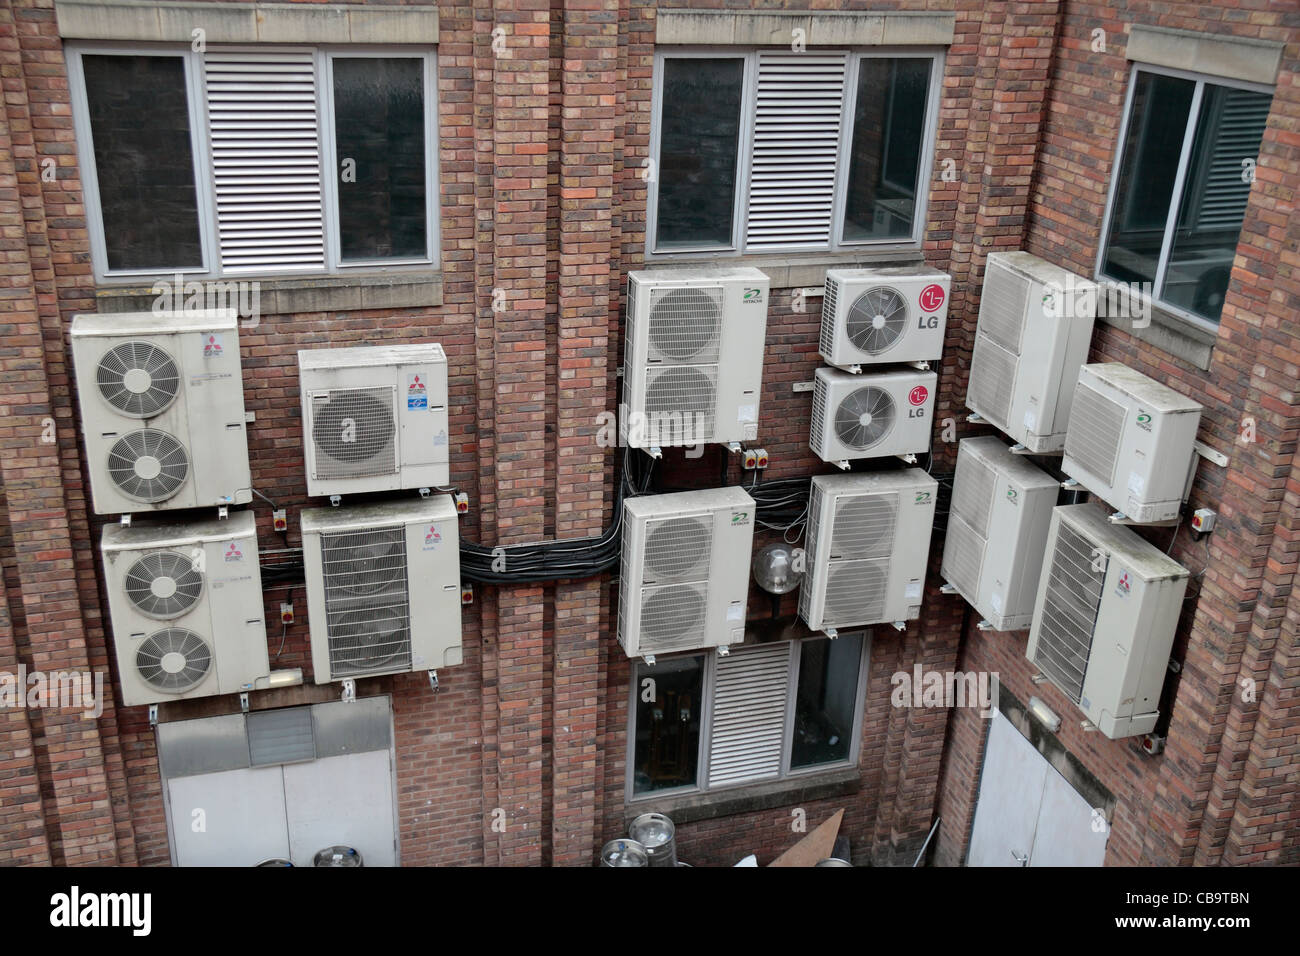 An Office Block Wall Full Of Ugly Air Conditioning Units